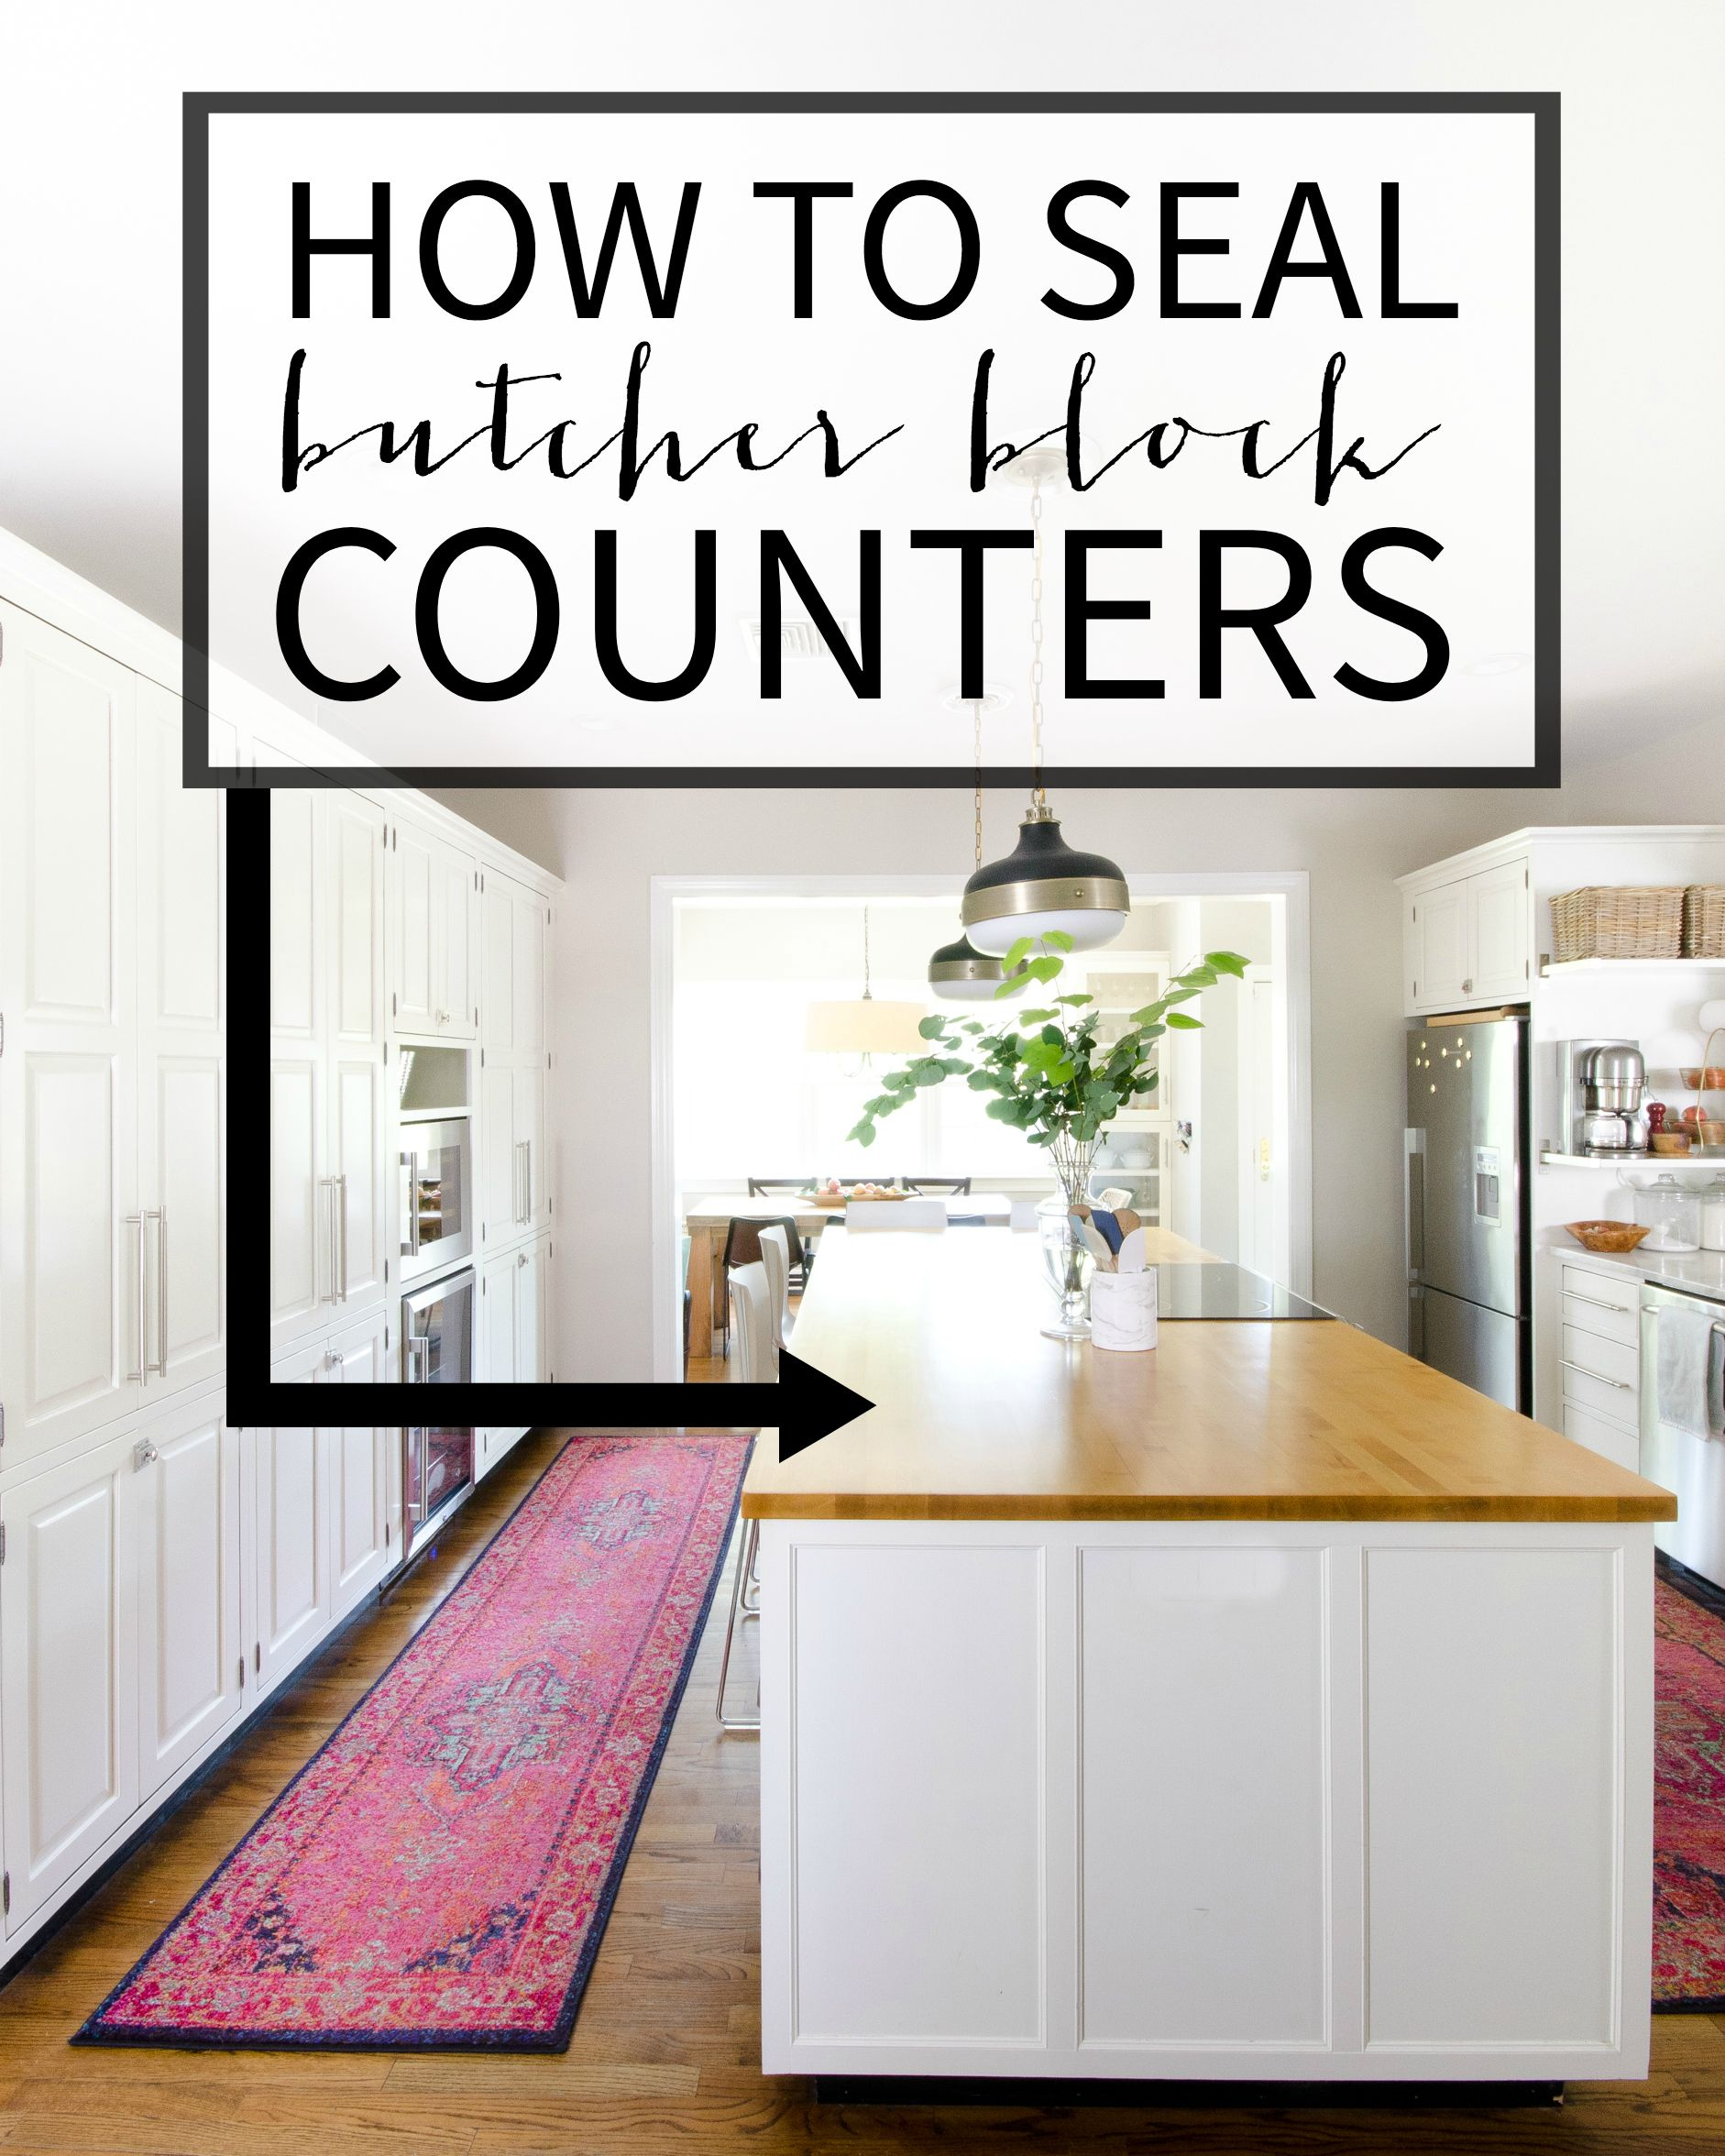 How to Seal Butcher Block Counters in 2020 (With images